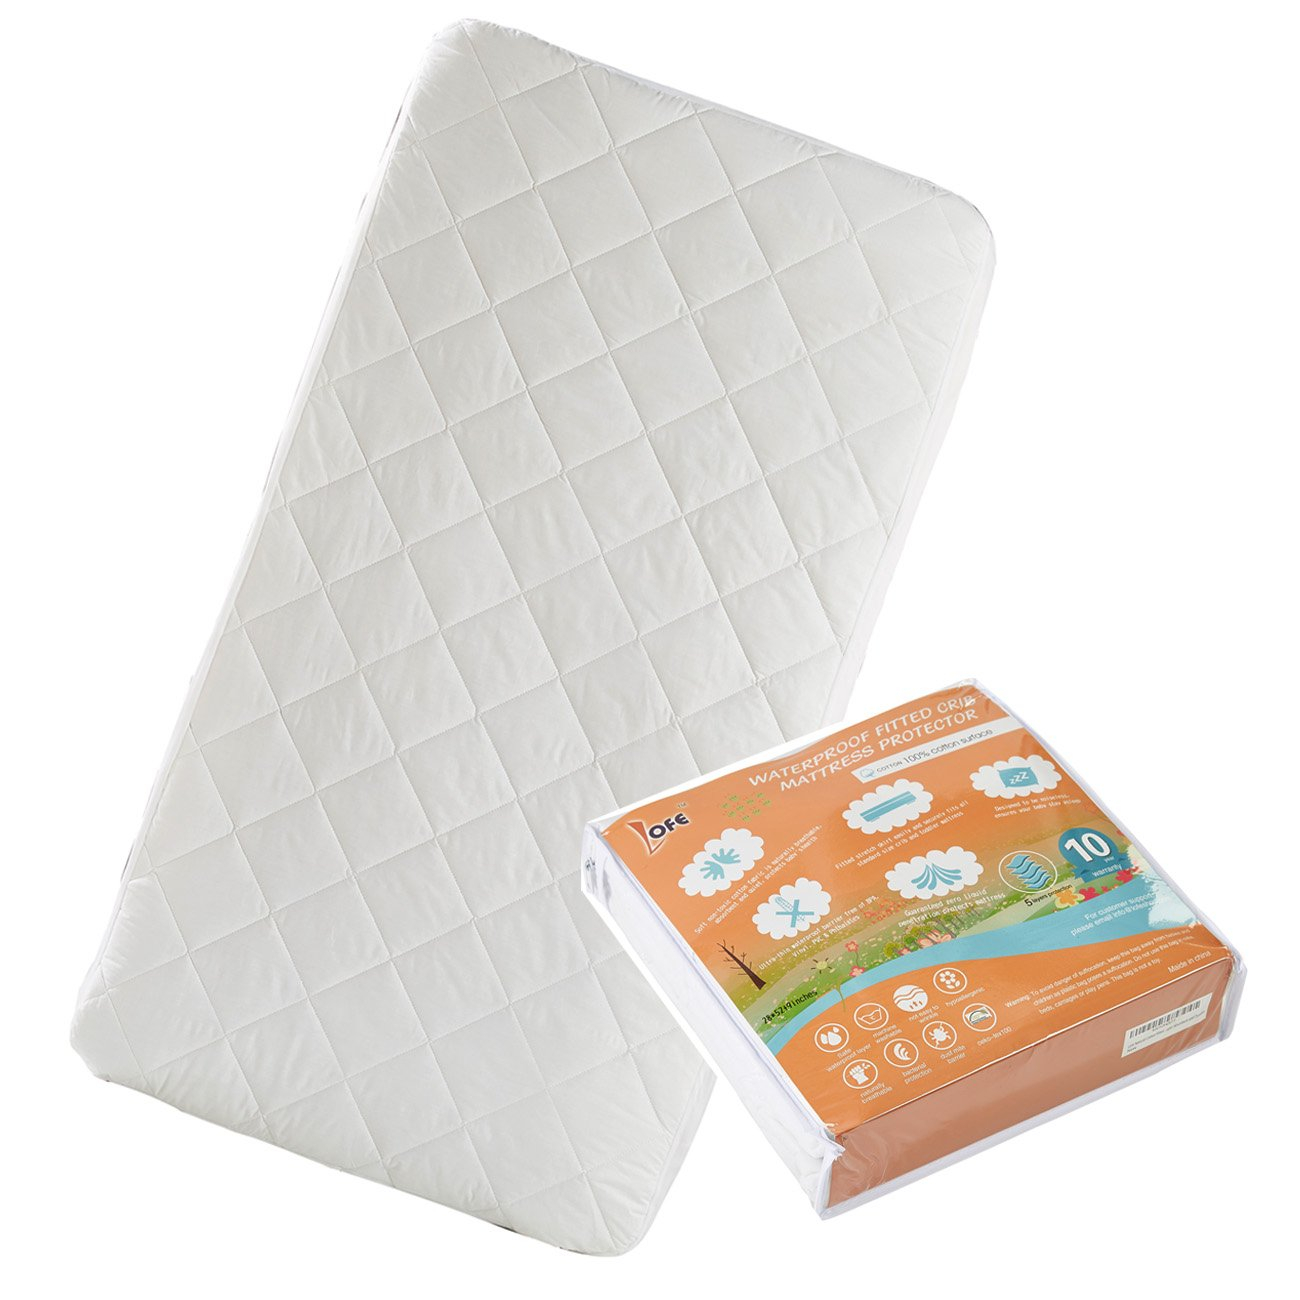 Lofe Cotton Fitted Crib Mattress Protector Waterproof - Infant Breathable Crib Mattress Pad - Toddler Baby Crib Mattress Cover28x52''